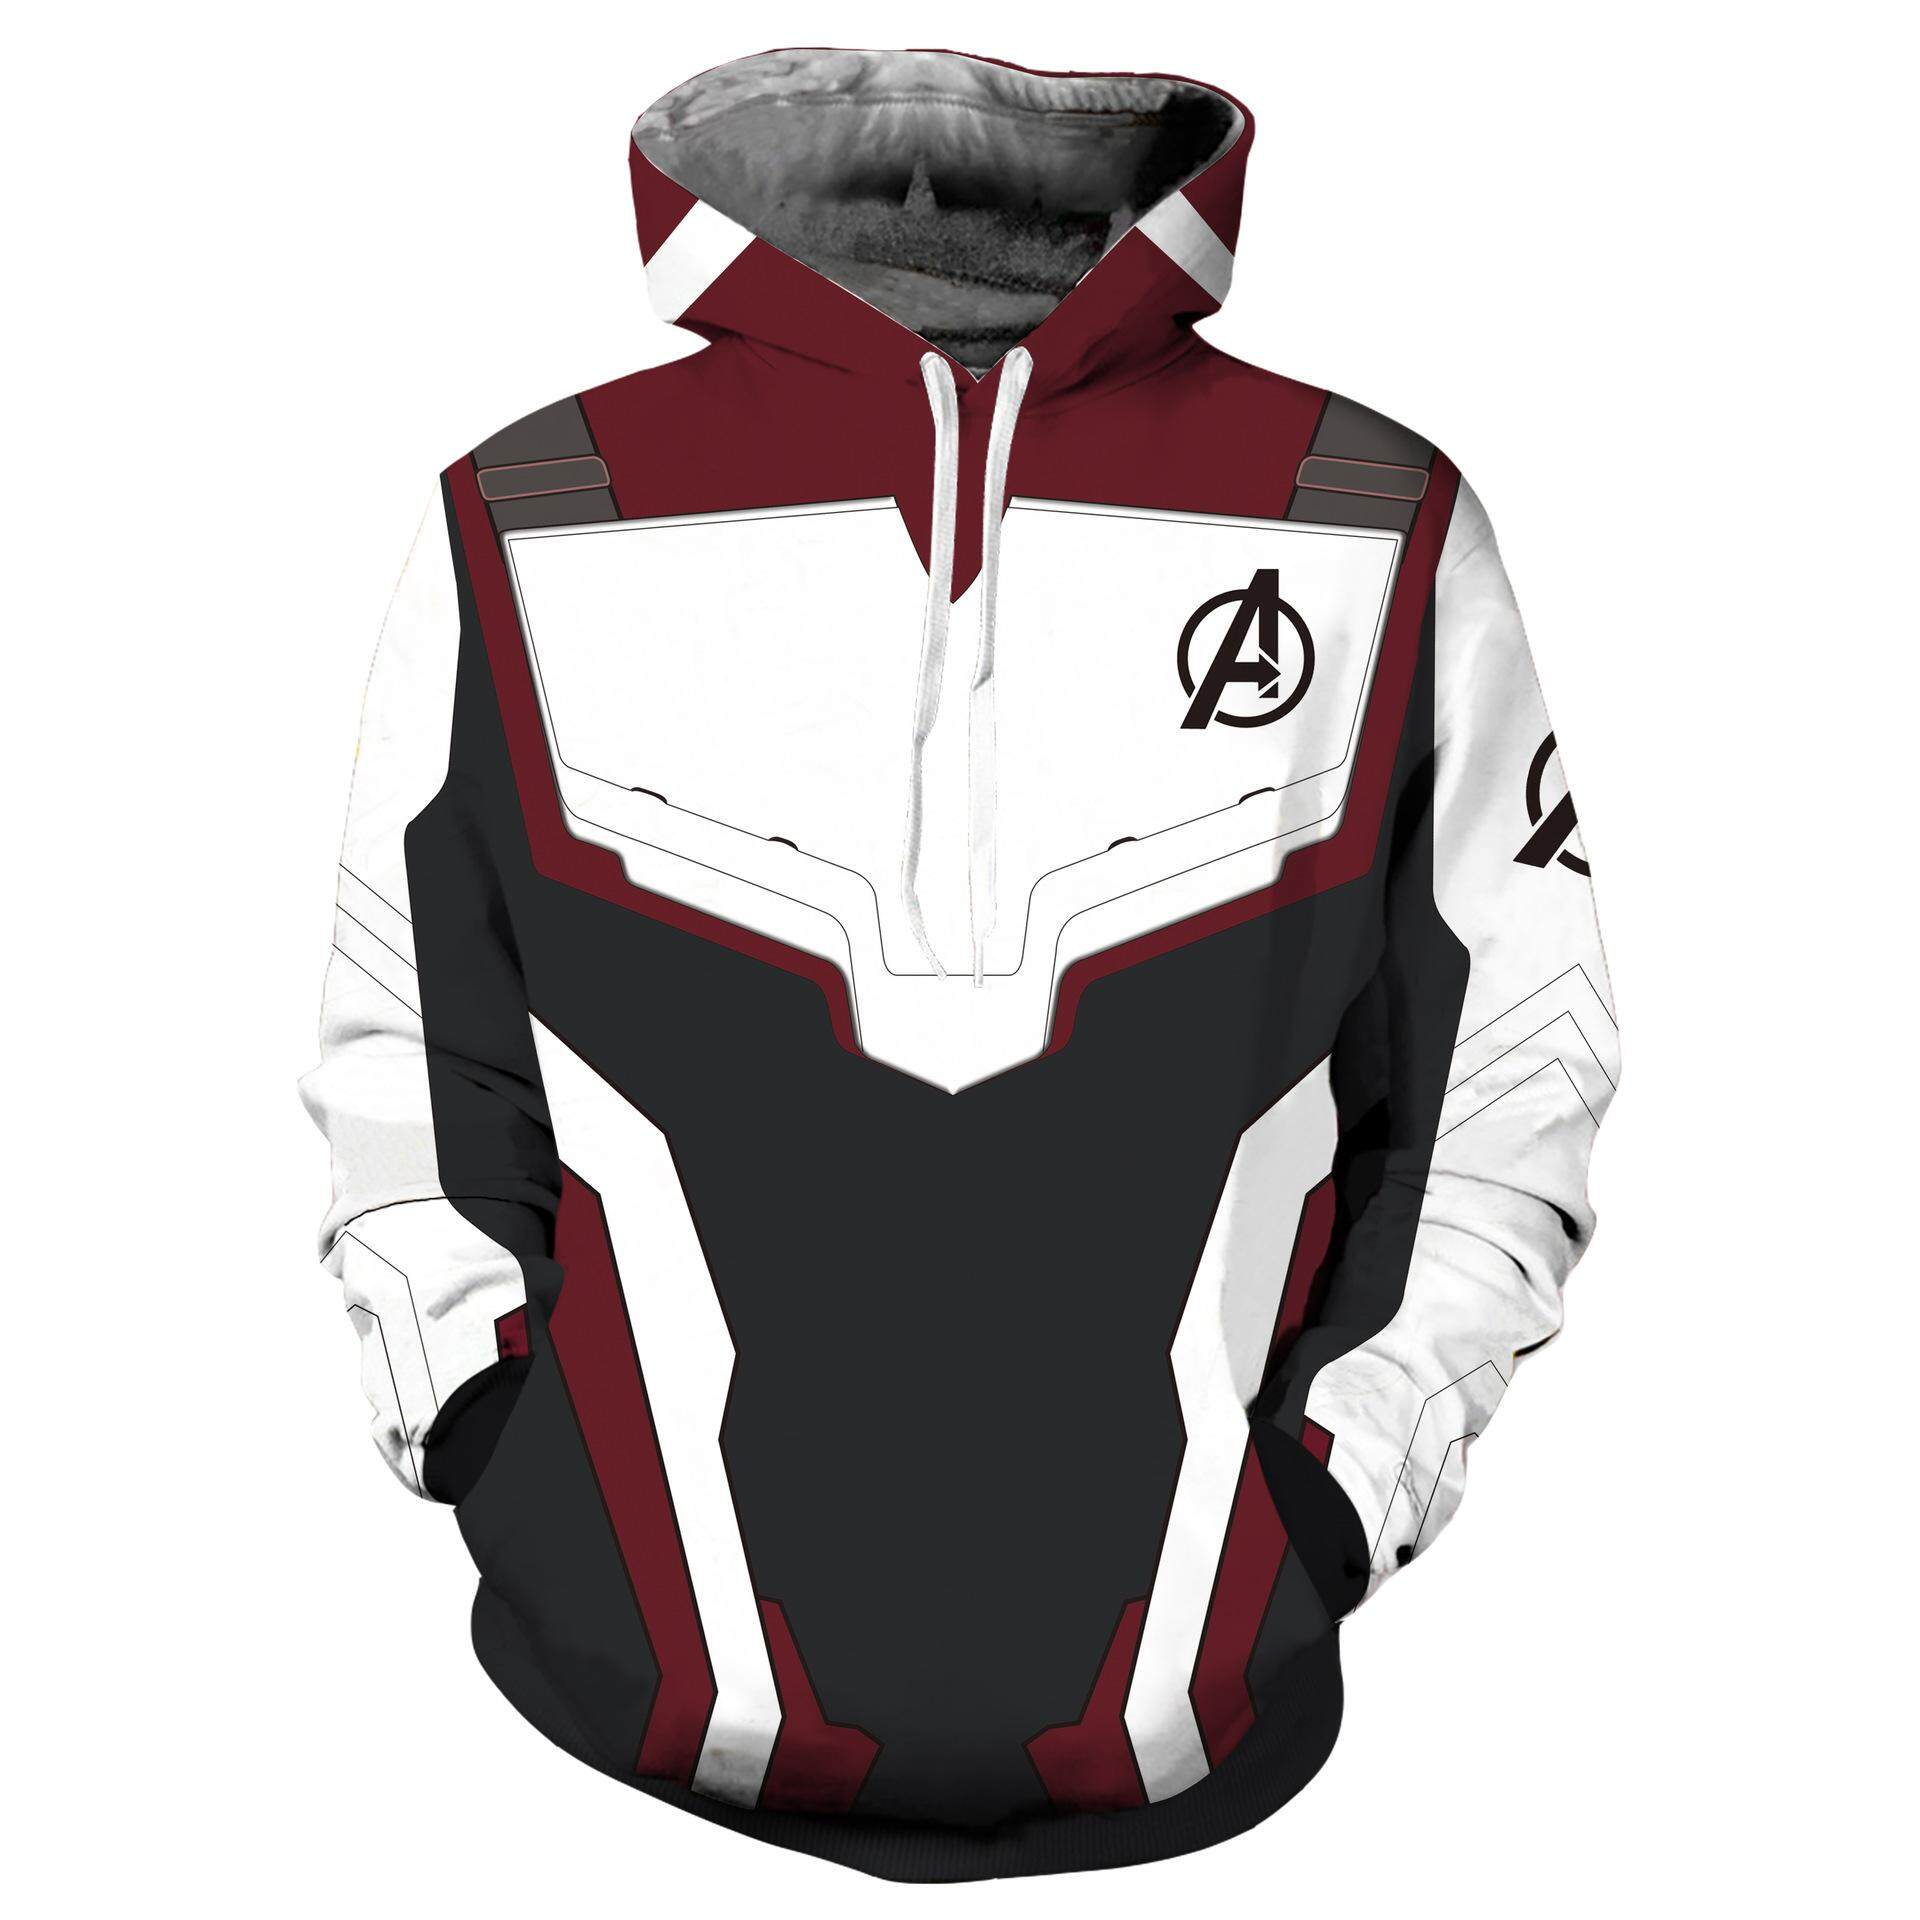 085e6117 The Avengers 4 Endgame Quantum Realm Sweatshirt Jacket Advanced Tech  Superhero Iron Man Hoodies Suit